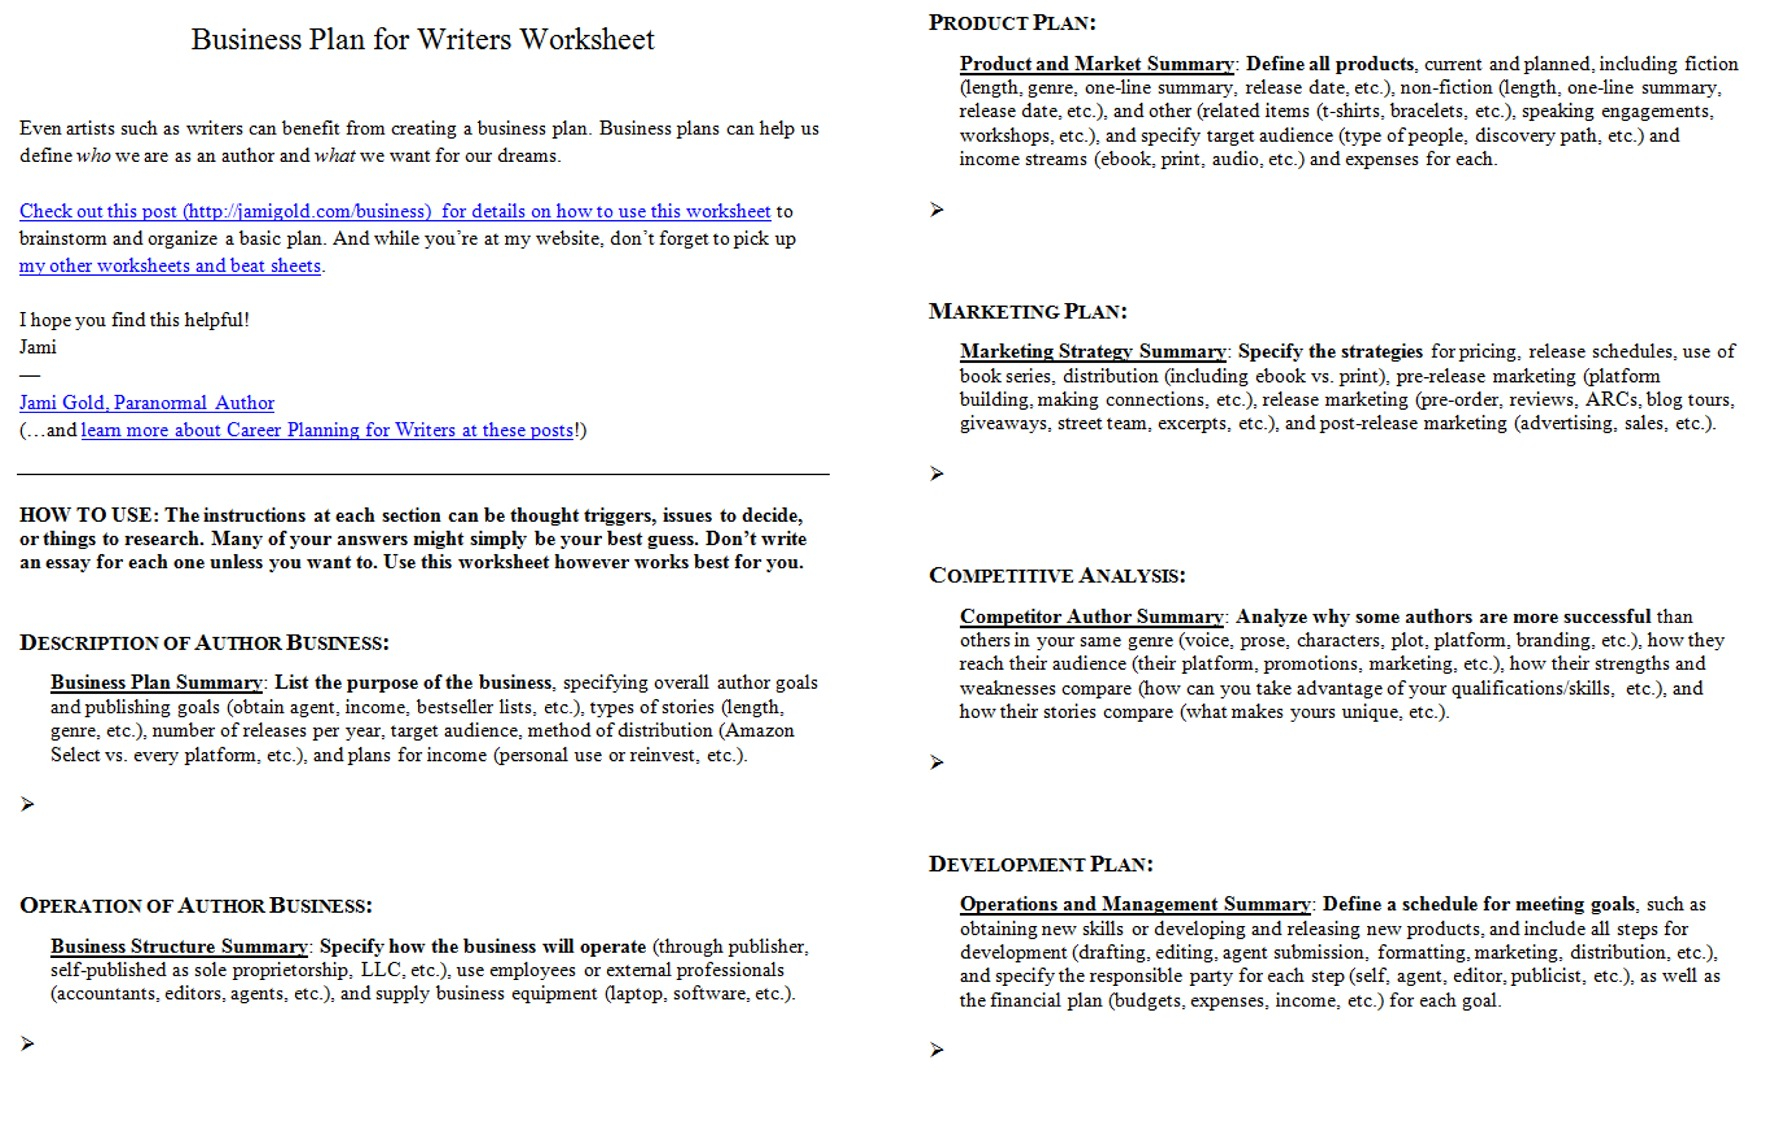 Weirdmailus  Splendid Worksheets For Writers  Jami Gold Paranormal Author With Goodlooking Screen Shot Of Both Pages Of The Business Plan For Writers Worksheet With Attractive Worksheets In English Also Grade  Subtraction Worksheets In Addition Common And Proper Nouns Free Worksheets And Adding Without Regrouping Worksheets As Well As Fractional Distillation Worksheet Additionally Worksheets On Subjects And Predicates From Jamigoldcom With Weirdmailus  Goodlooking Worksheets For Writers  Jami Gold Paranormal Author With Attractive Screen Shot Of Both Pages Of The Business Plan For Writers Worksheet And Splendid Worksheets In English Also Grade  Subtraction Worksheets In Addition Common And Proper Nouns Free Worksheets From Jamigoldcom